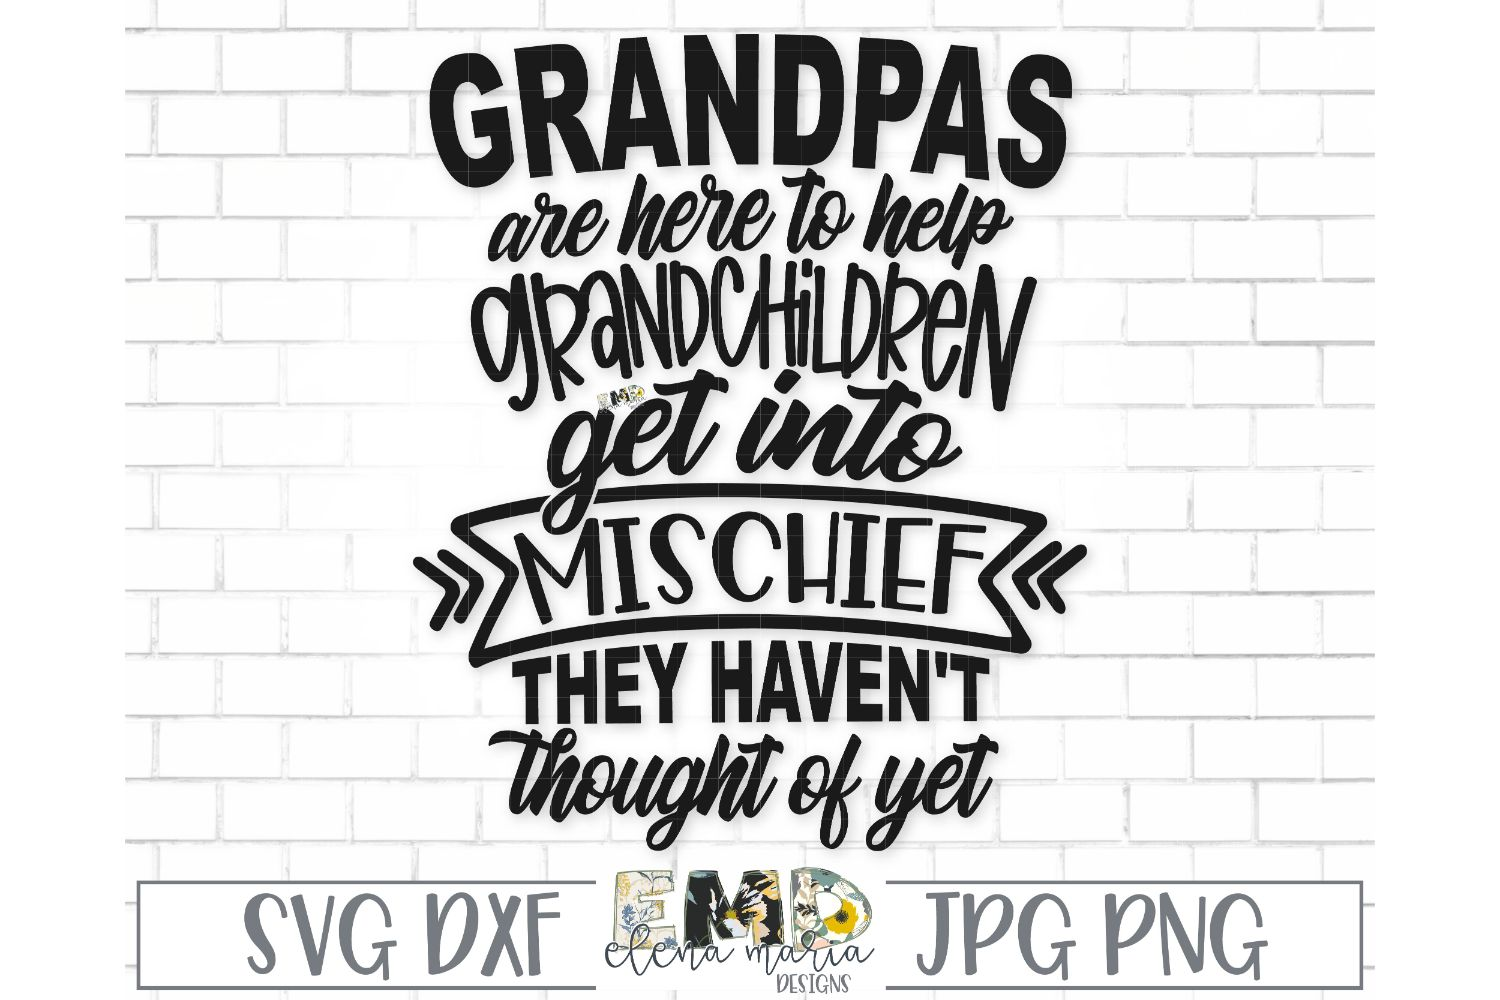 Grandpa Grandchildren SVG File | Mischief Fathers Day Svg example image 2